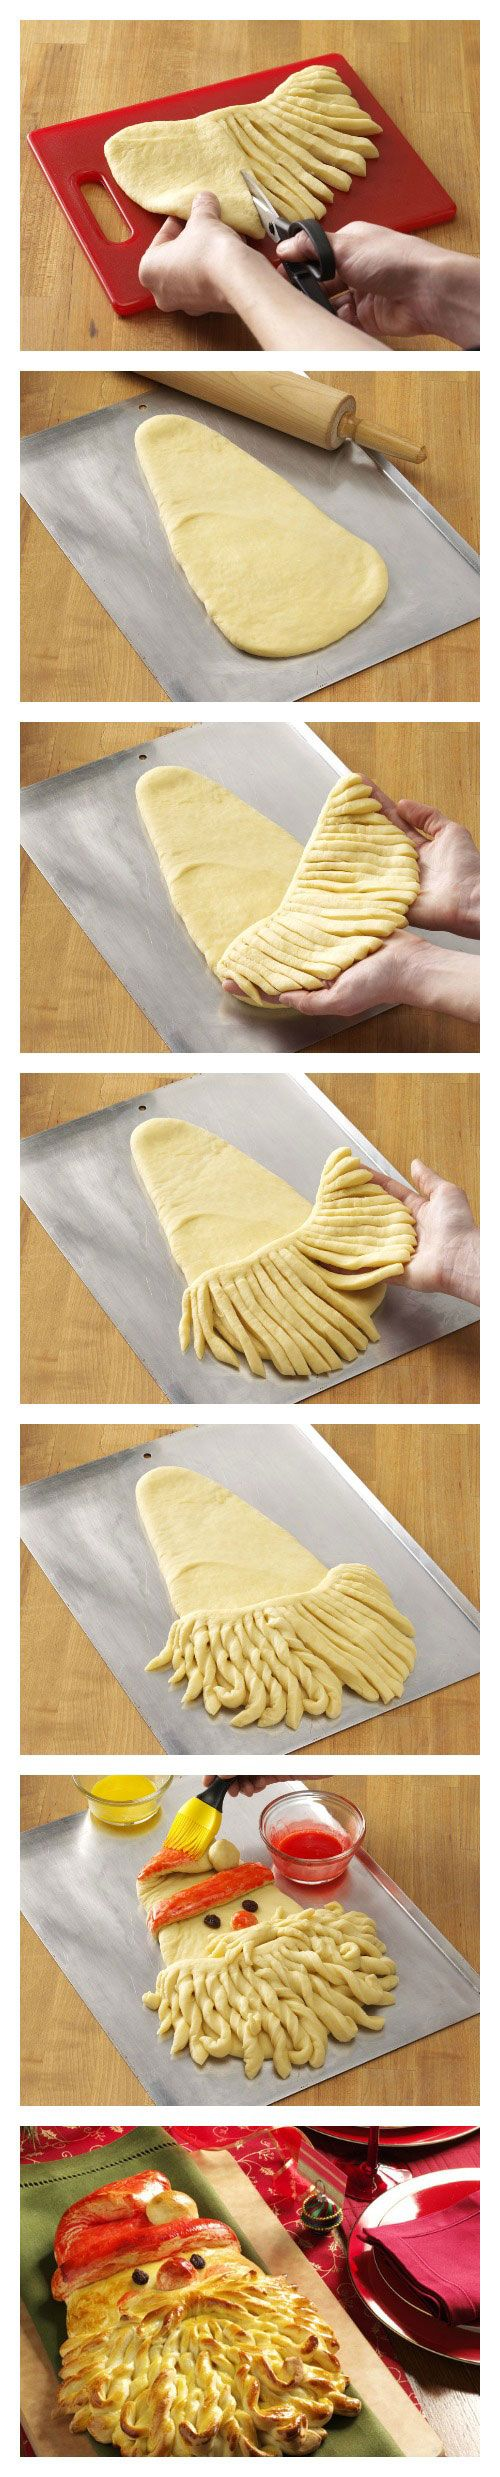 How to Make Santa Bread. From tasteofhome.com. #SOCIALtips #SocialEating #Italia #SocialEatingITALIA #HomeRestaurant #consulenza